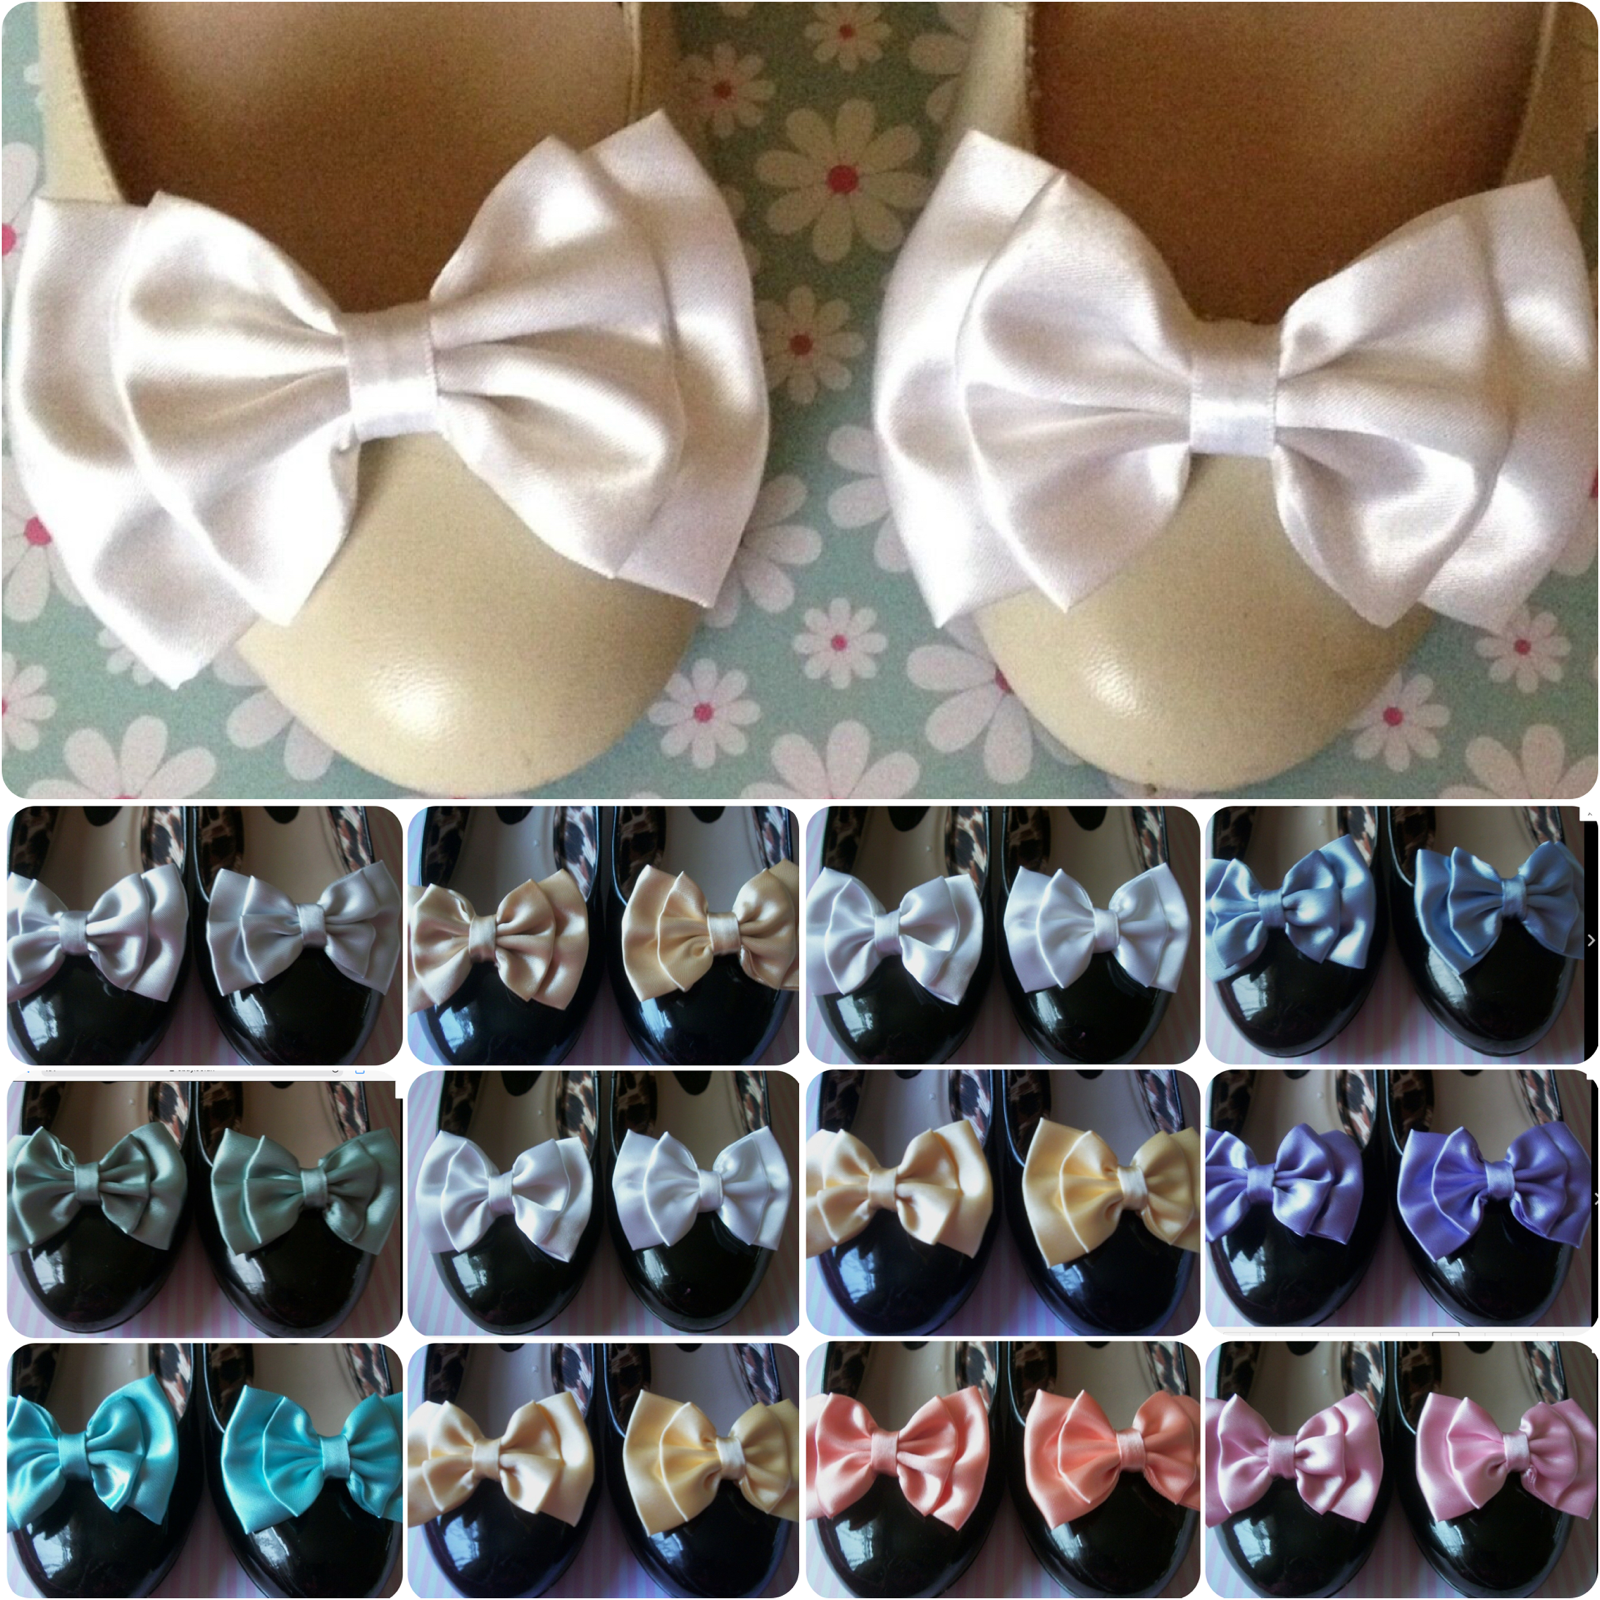 PAIR PALE SATIN BOW SHOE CLIPS VINTAGE STYLE GLAMOUR 40s 50s BRIDAL PROM PARTY